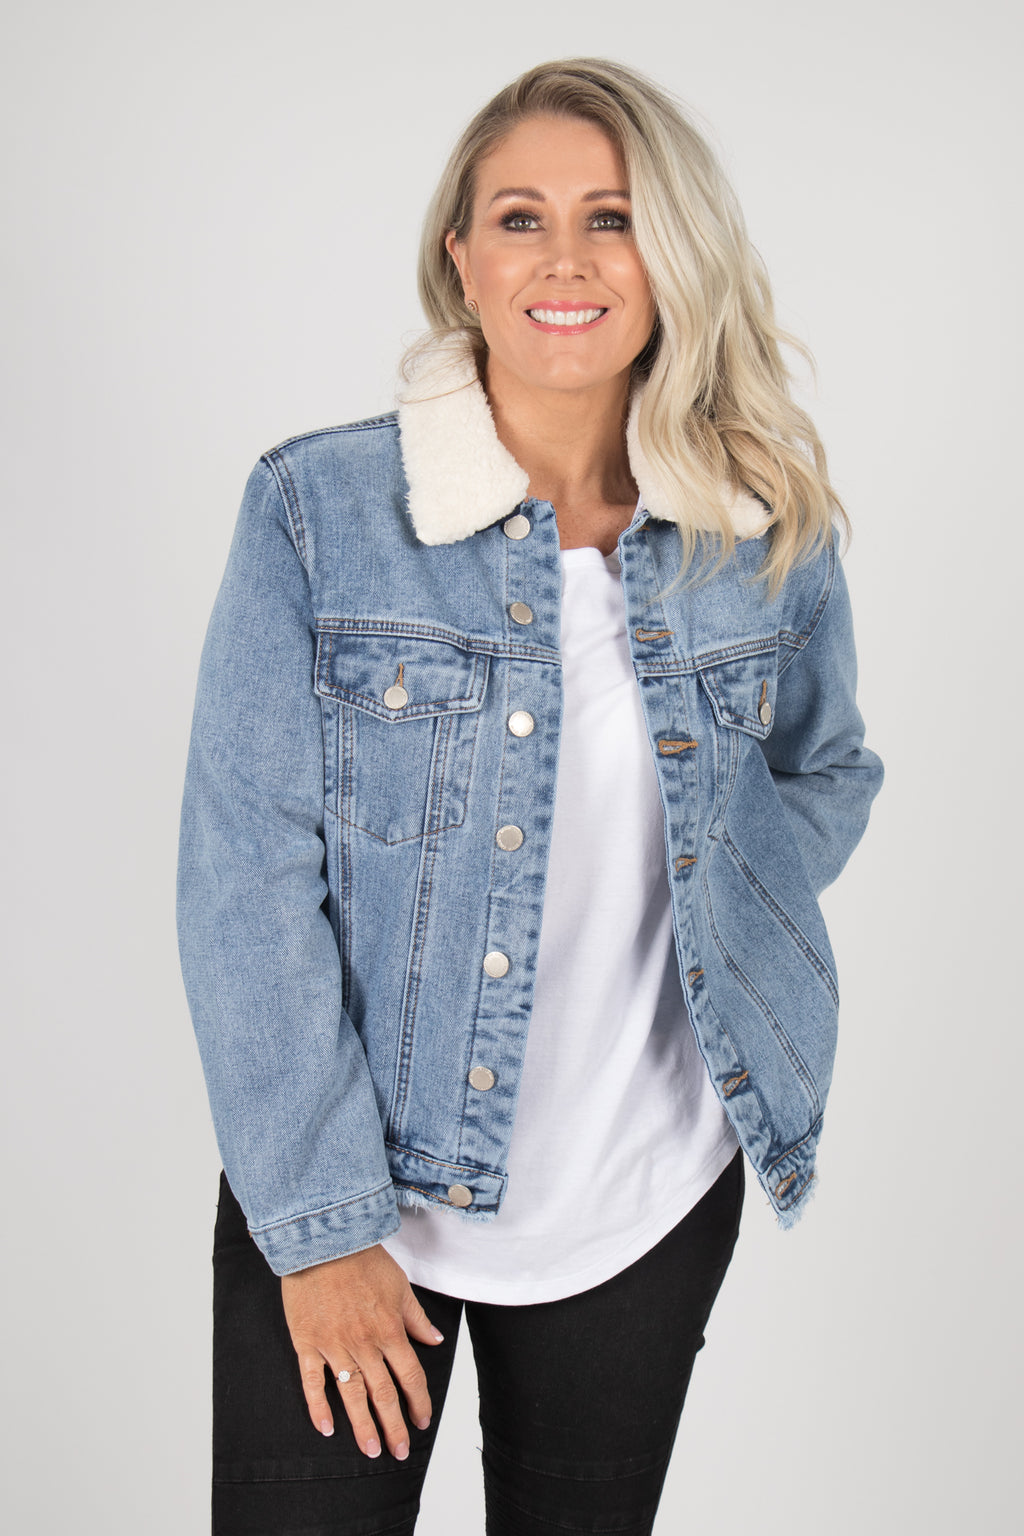 Zara Denim Jacket in Light